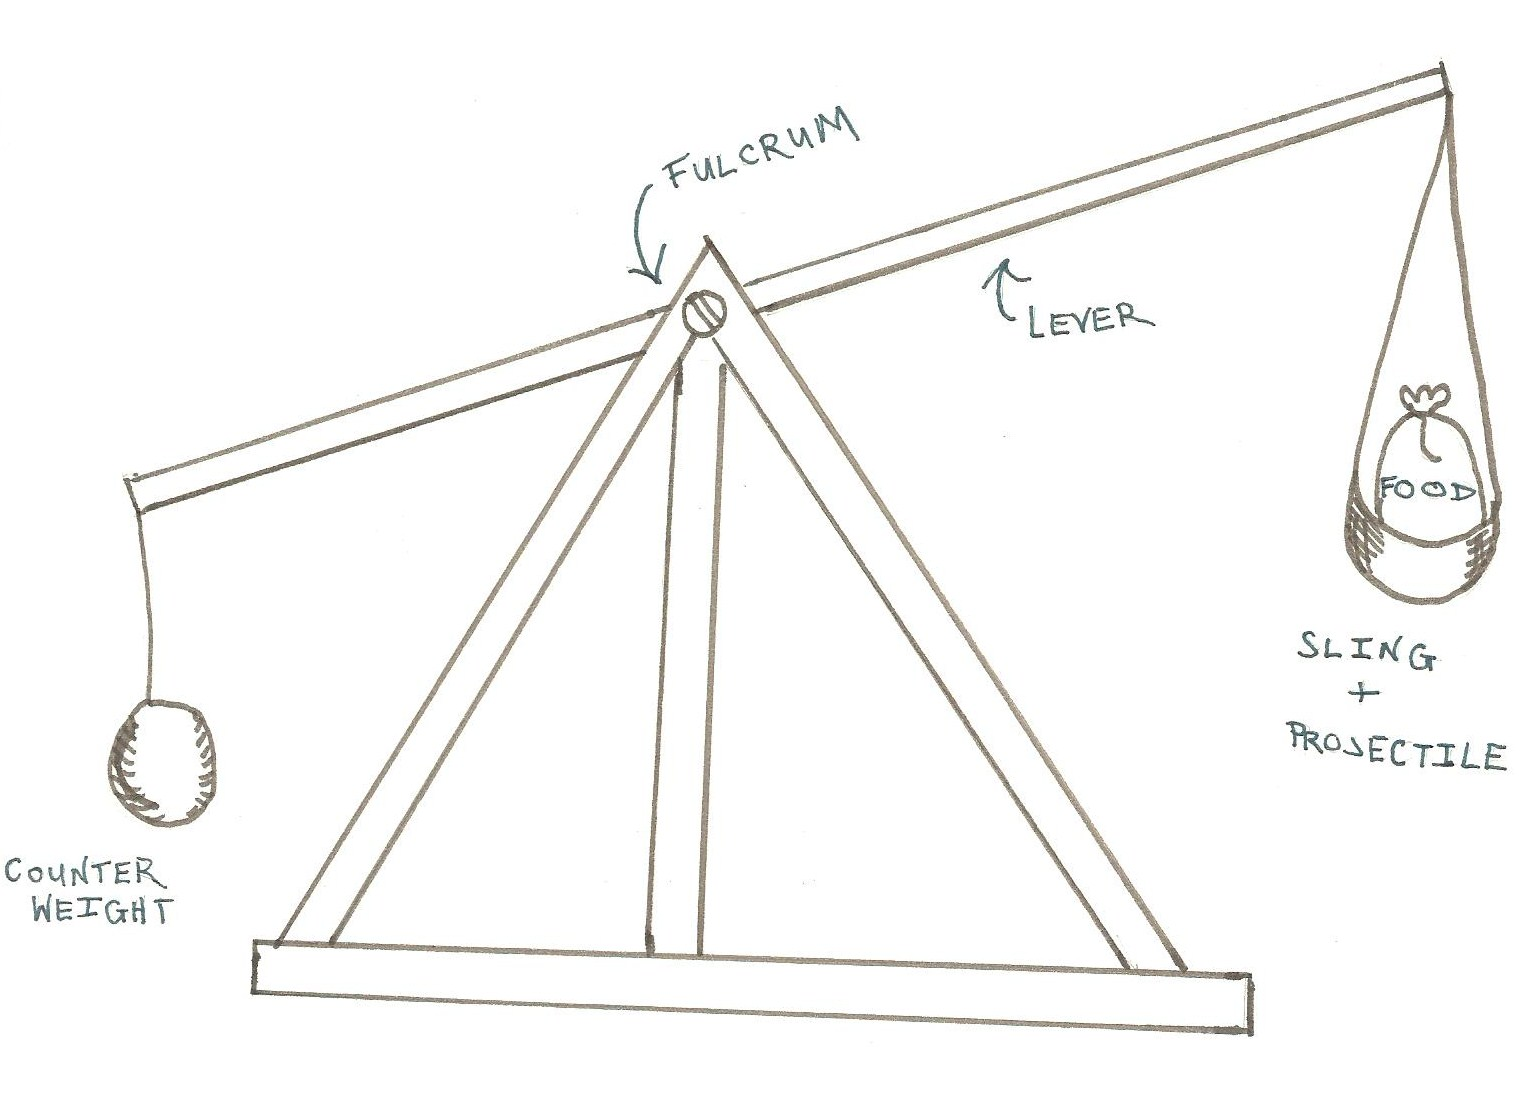 US20120231433 likewise Trebuchet Main Supports 2x besides Our Machines moreover Page 310 furthermore 7C 7C  redstoneprojects   7Ctrebuchetstore 7Ccatapult 1. on floating arm trebuchet plans